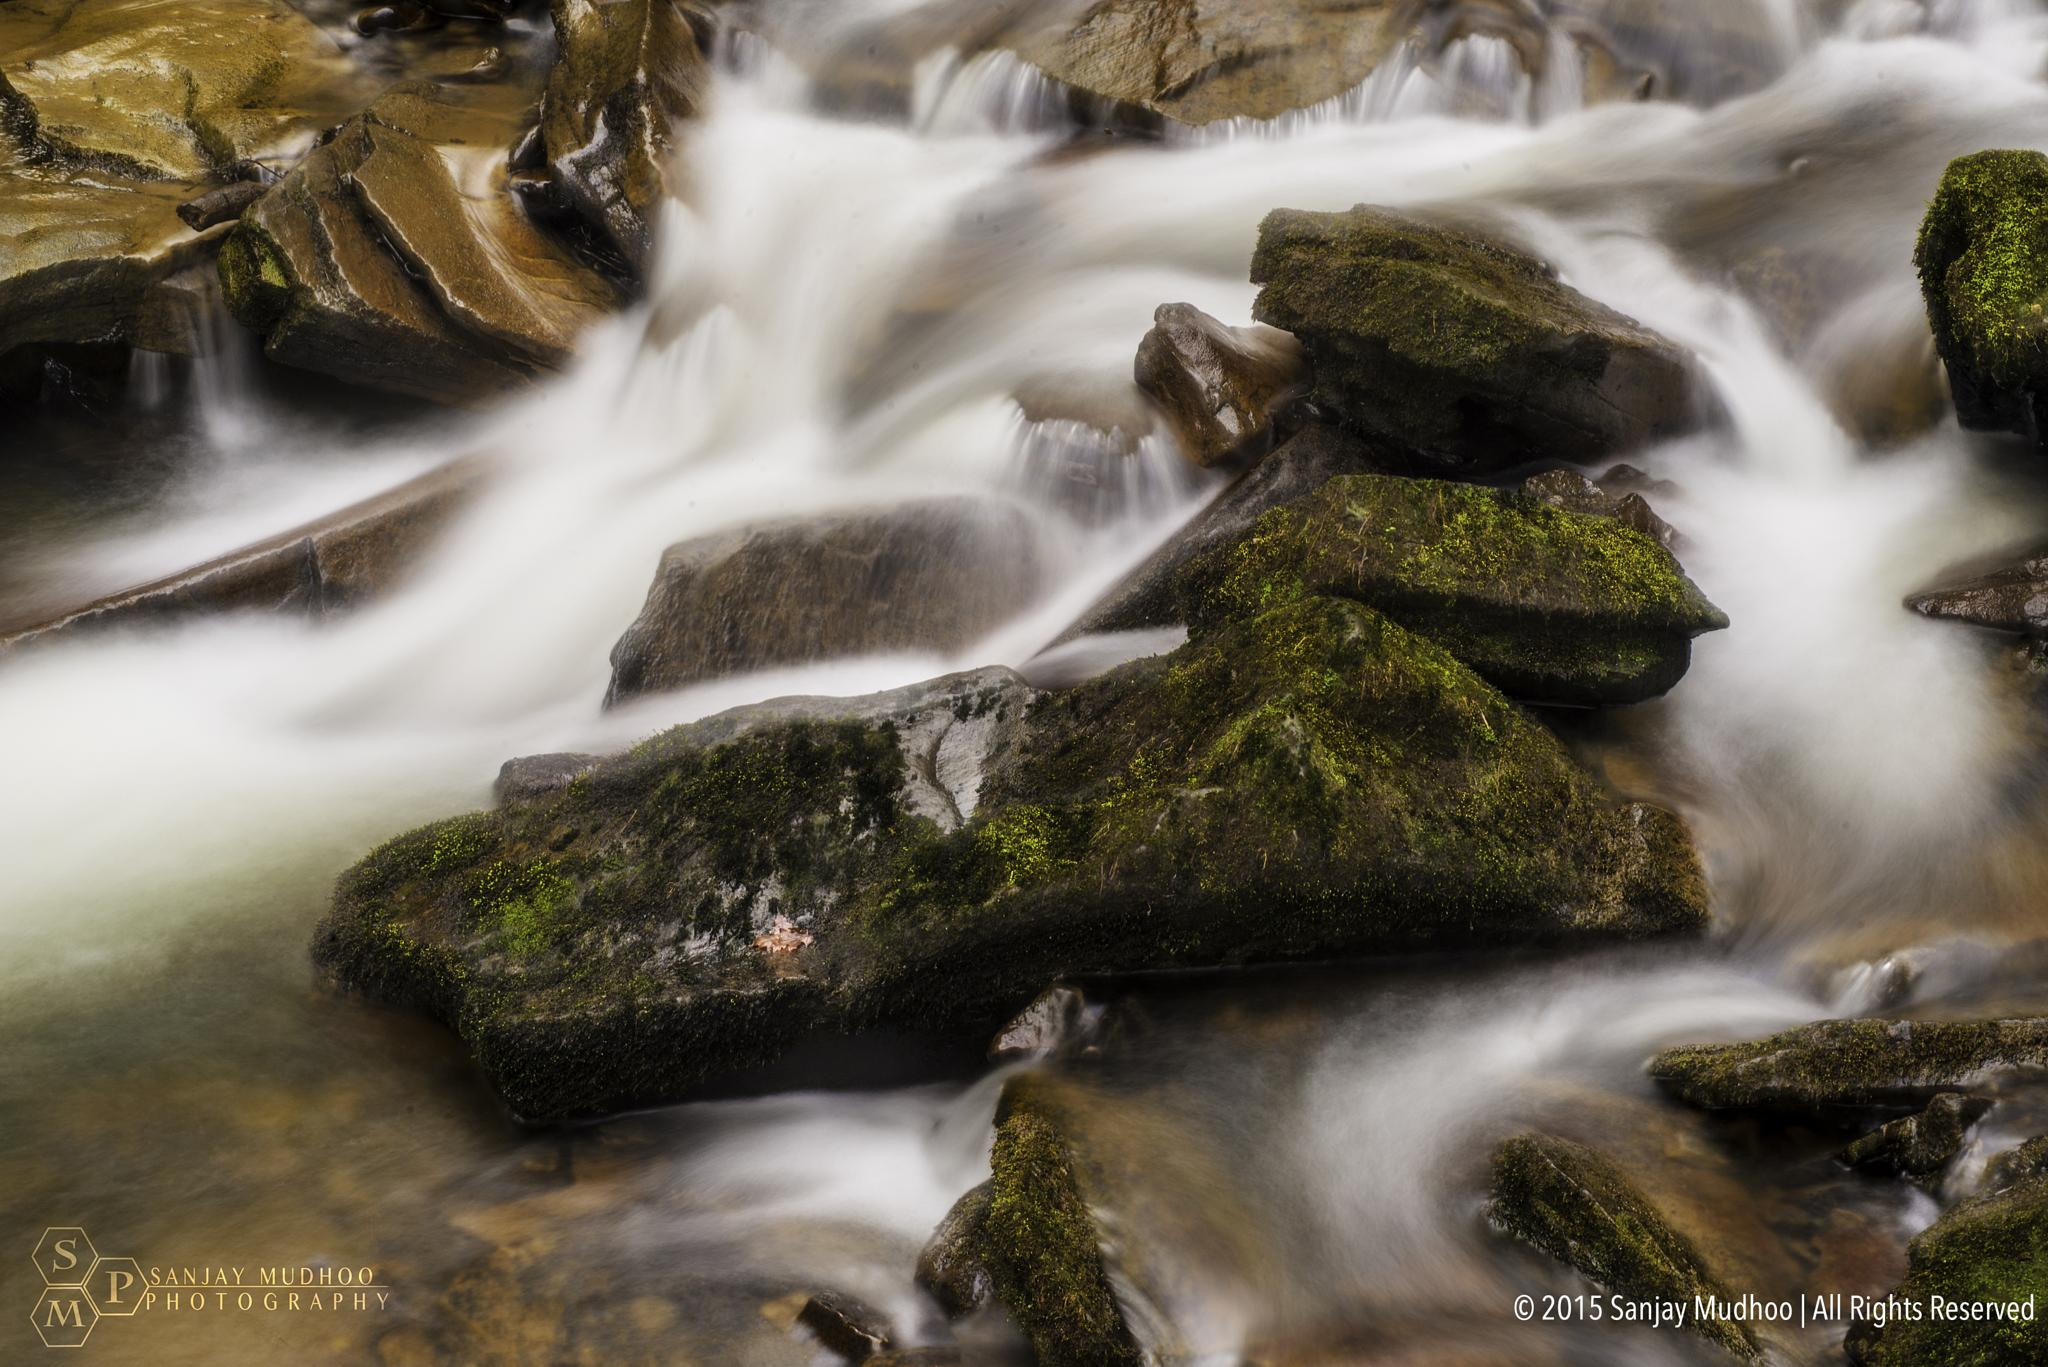 Stream by Sanjay Mudhoo